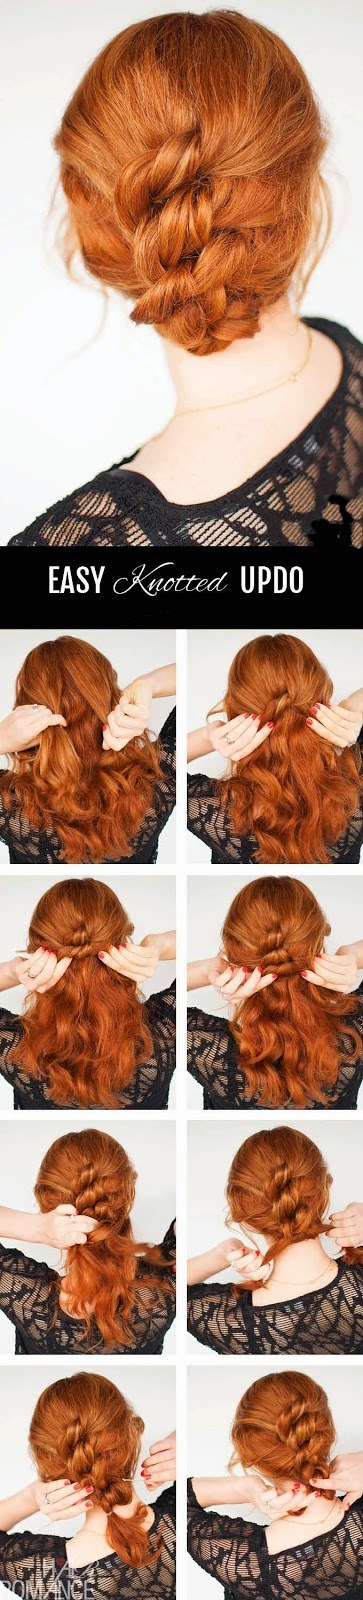 EASY KNOTTED HAIRSTYLE TUTORIAL}